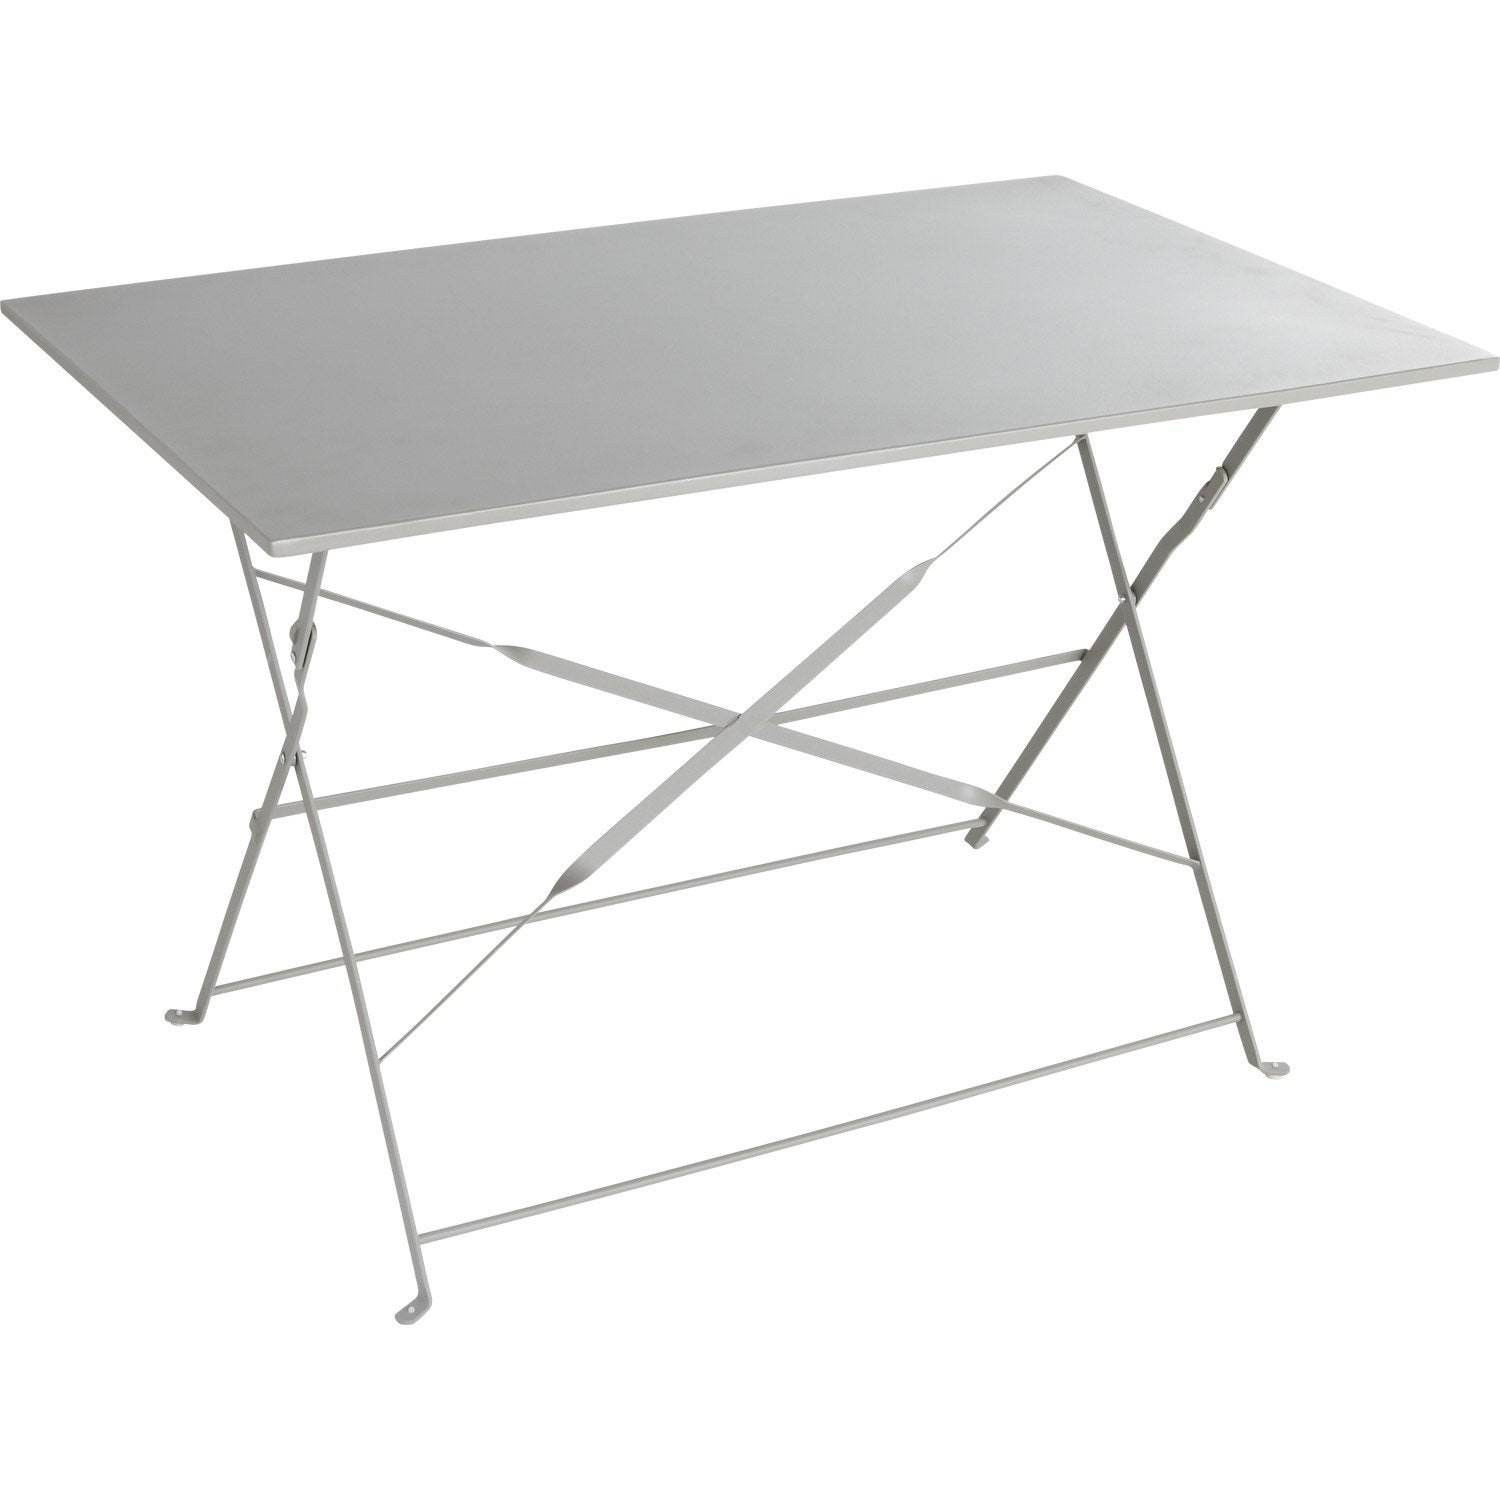 Table de jardin naterial flore rectangulaire gris 4 - Leroy merlin table pliante ...